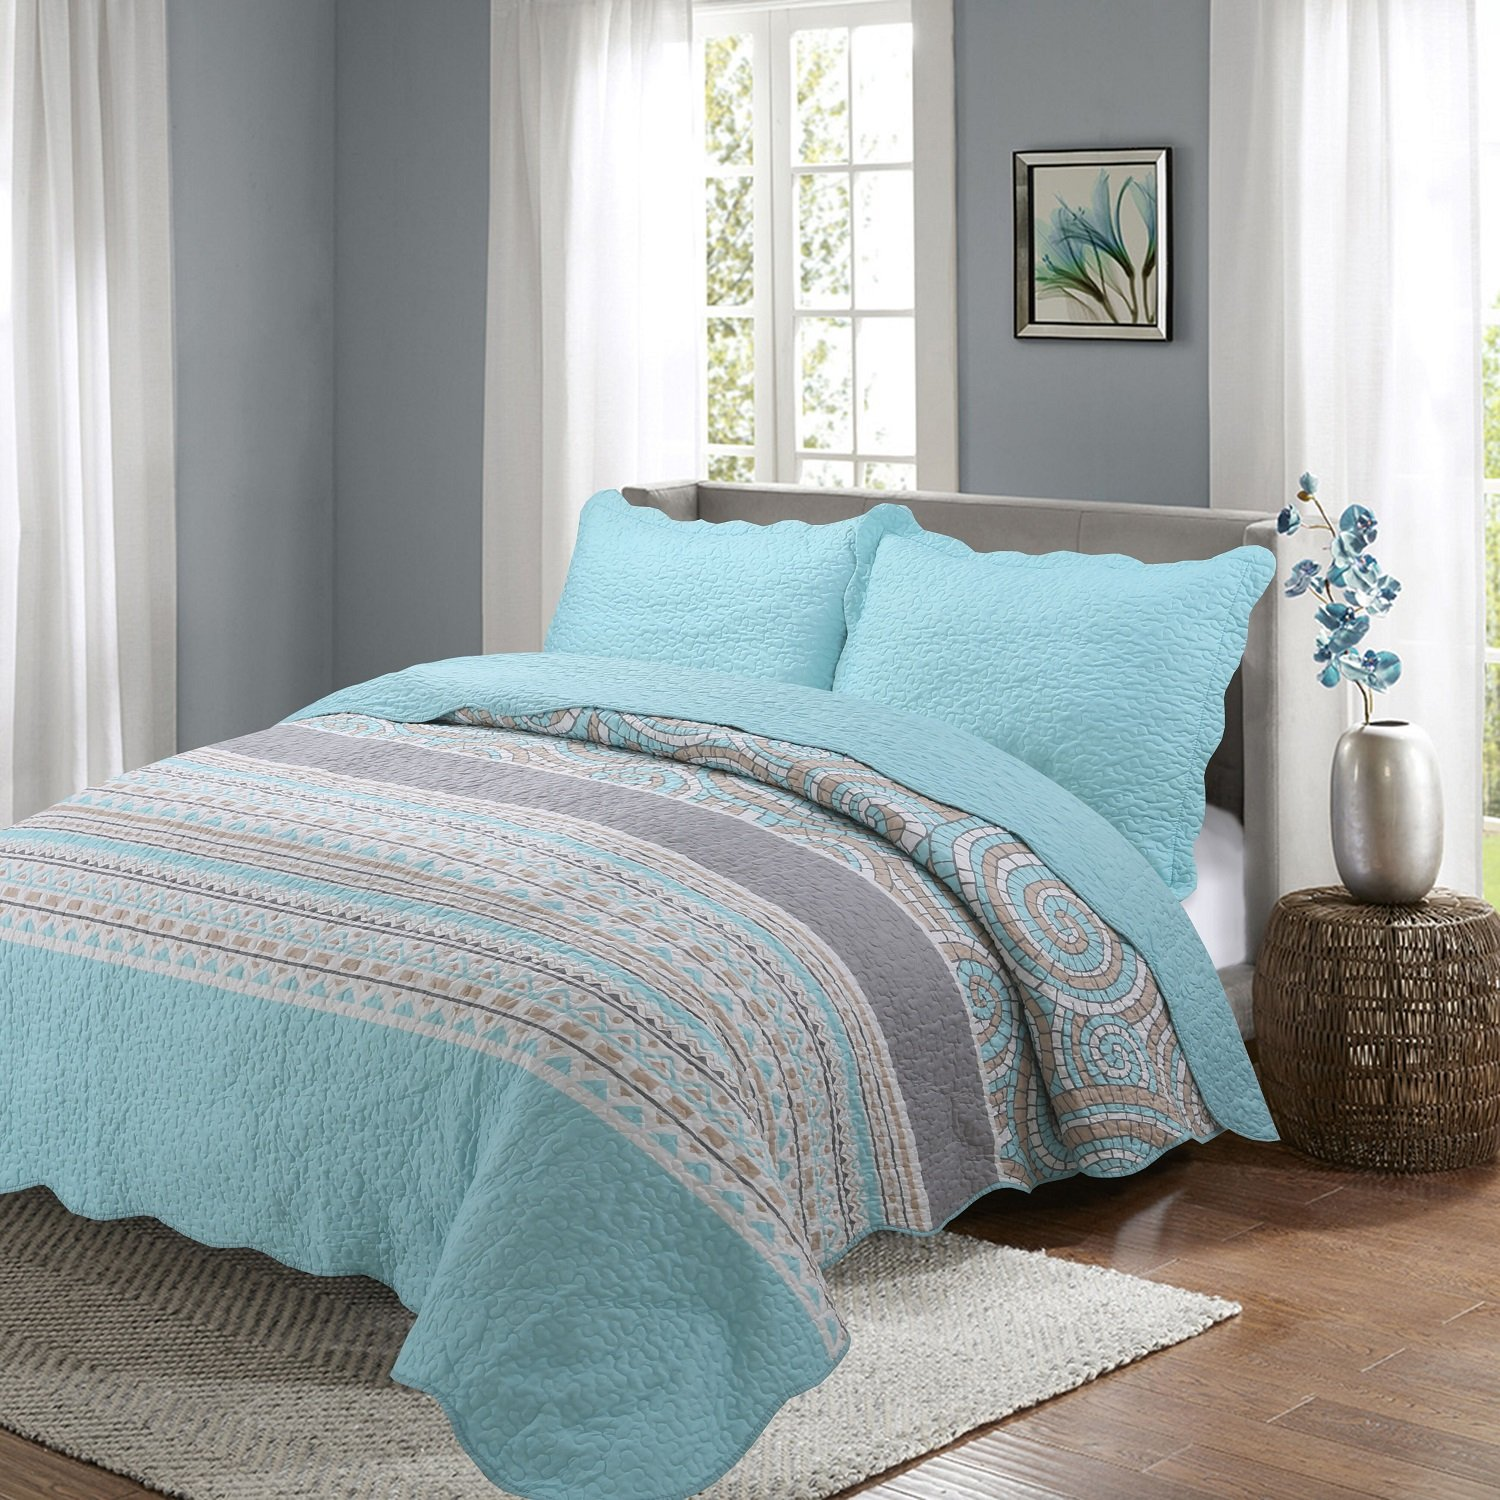 Quilt queen size Sets -3pcs include 2 pillow Shams patchwork Bedspread blanket (Queen:90'' 90'', Lake Blue)